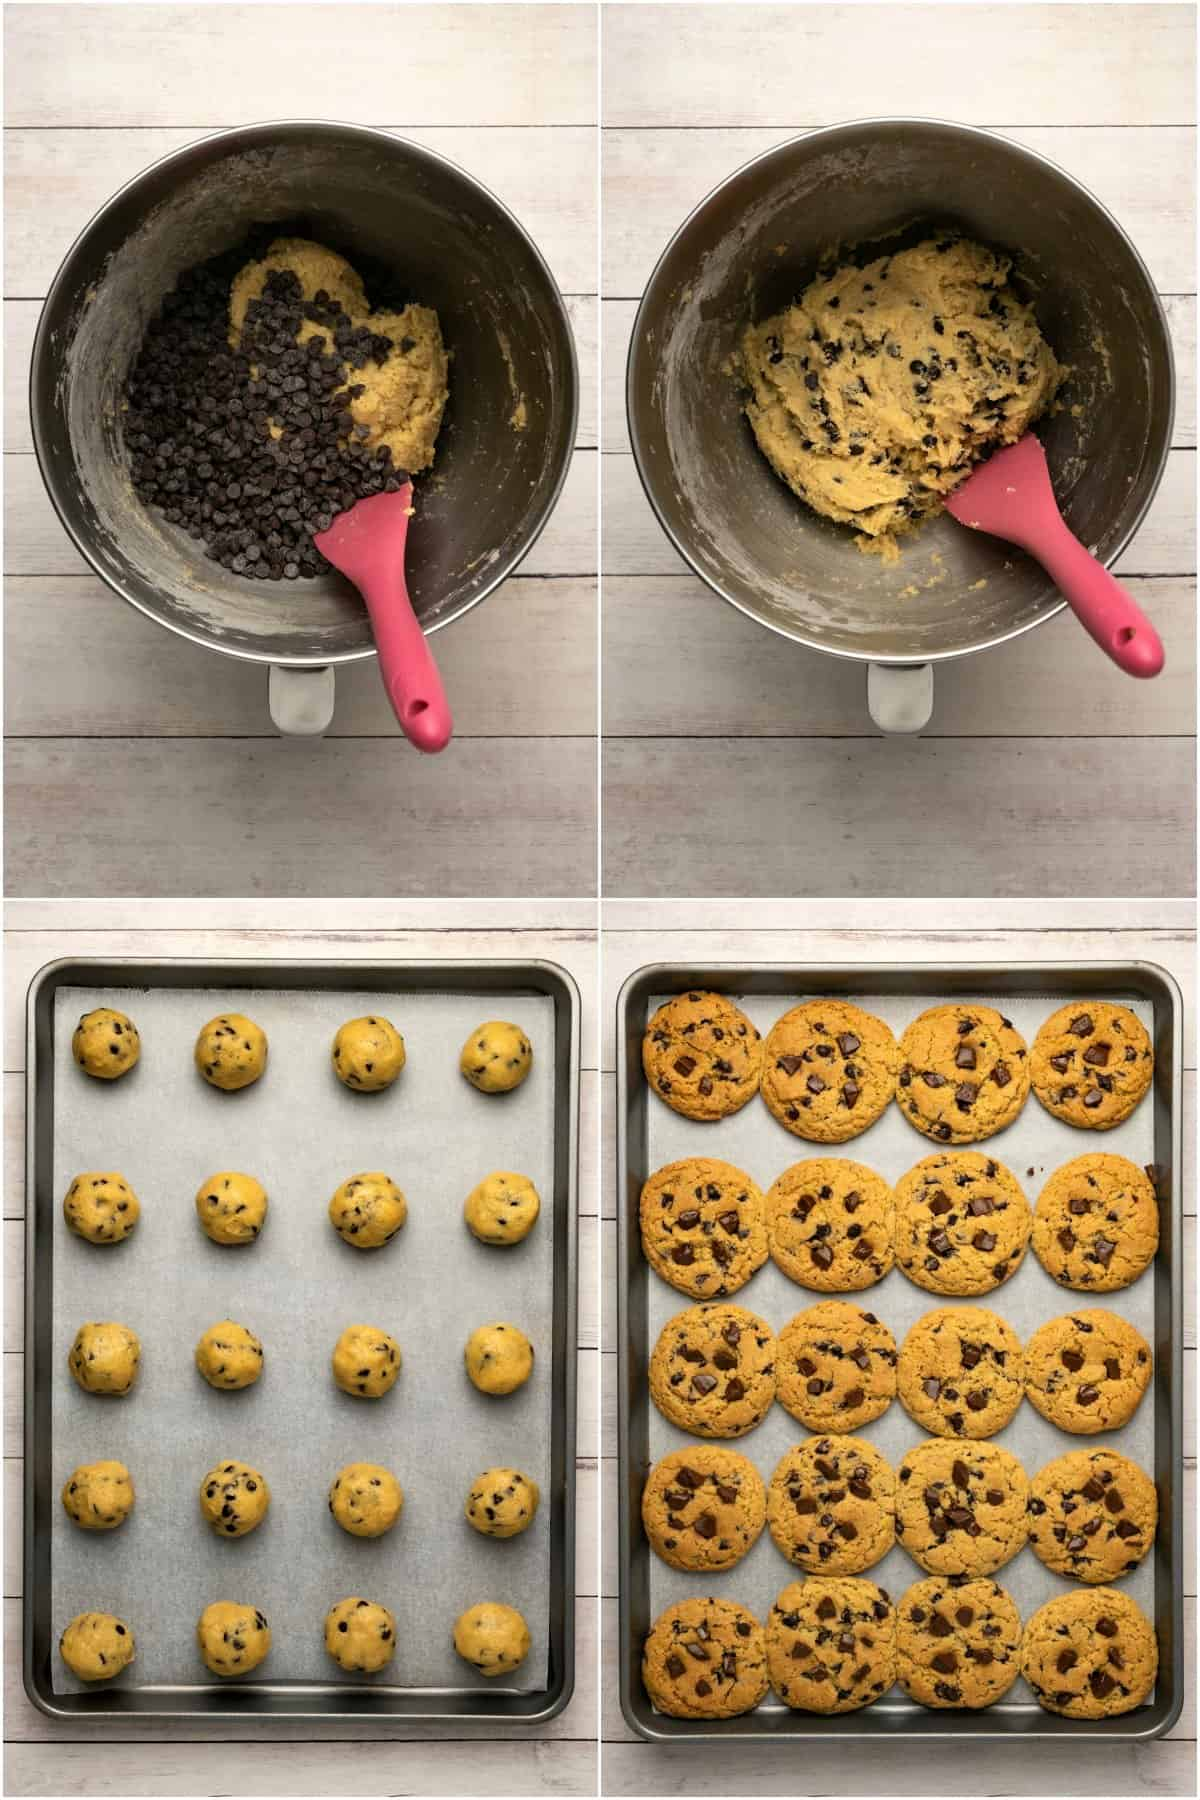 Step by step process photos of making chocolate chip cookies.